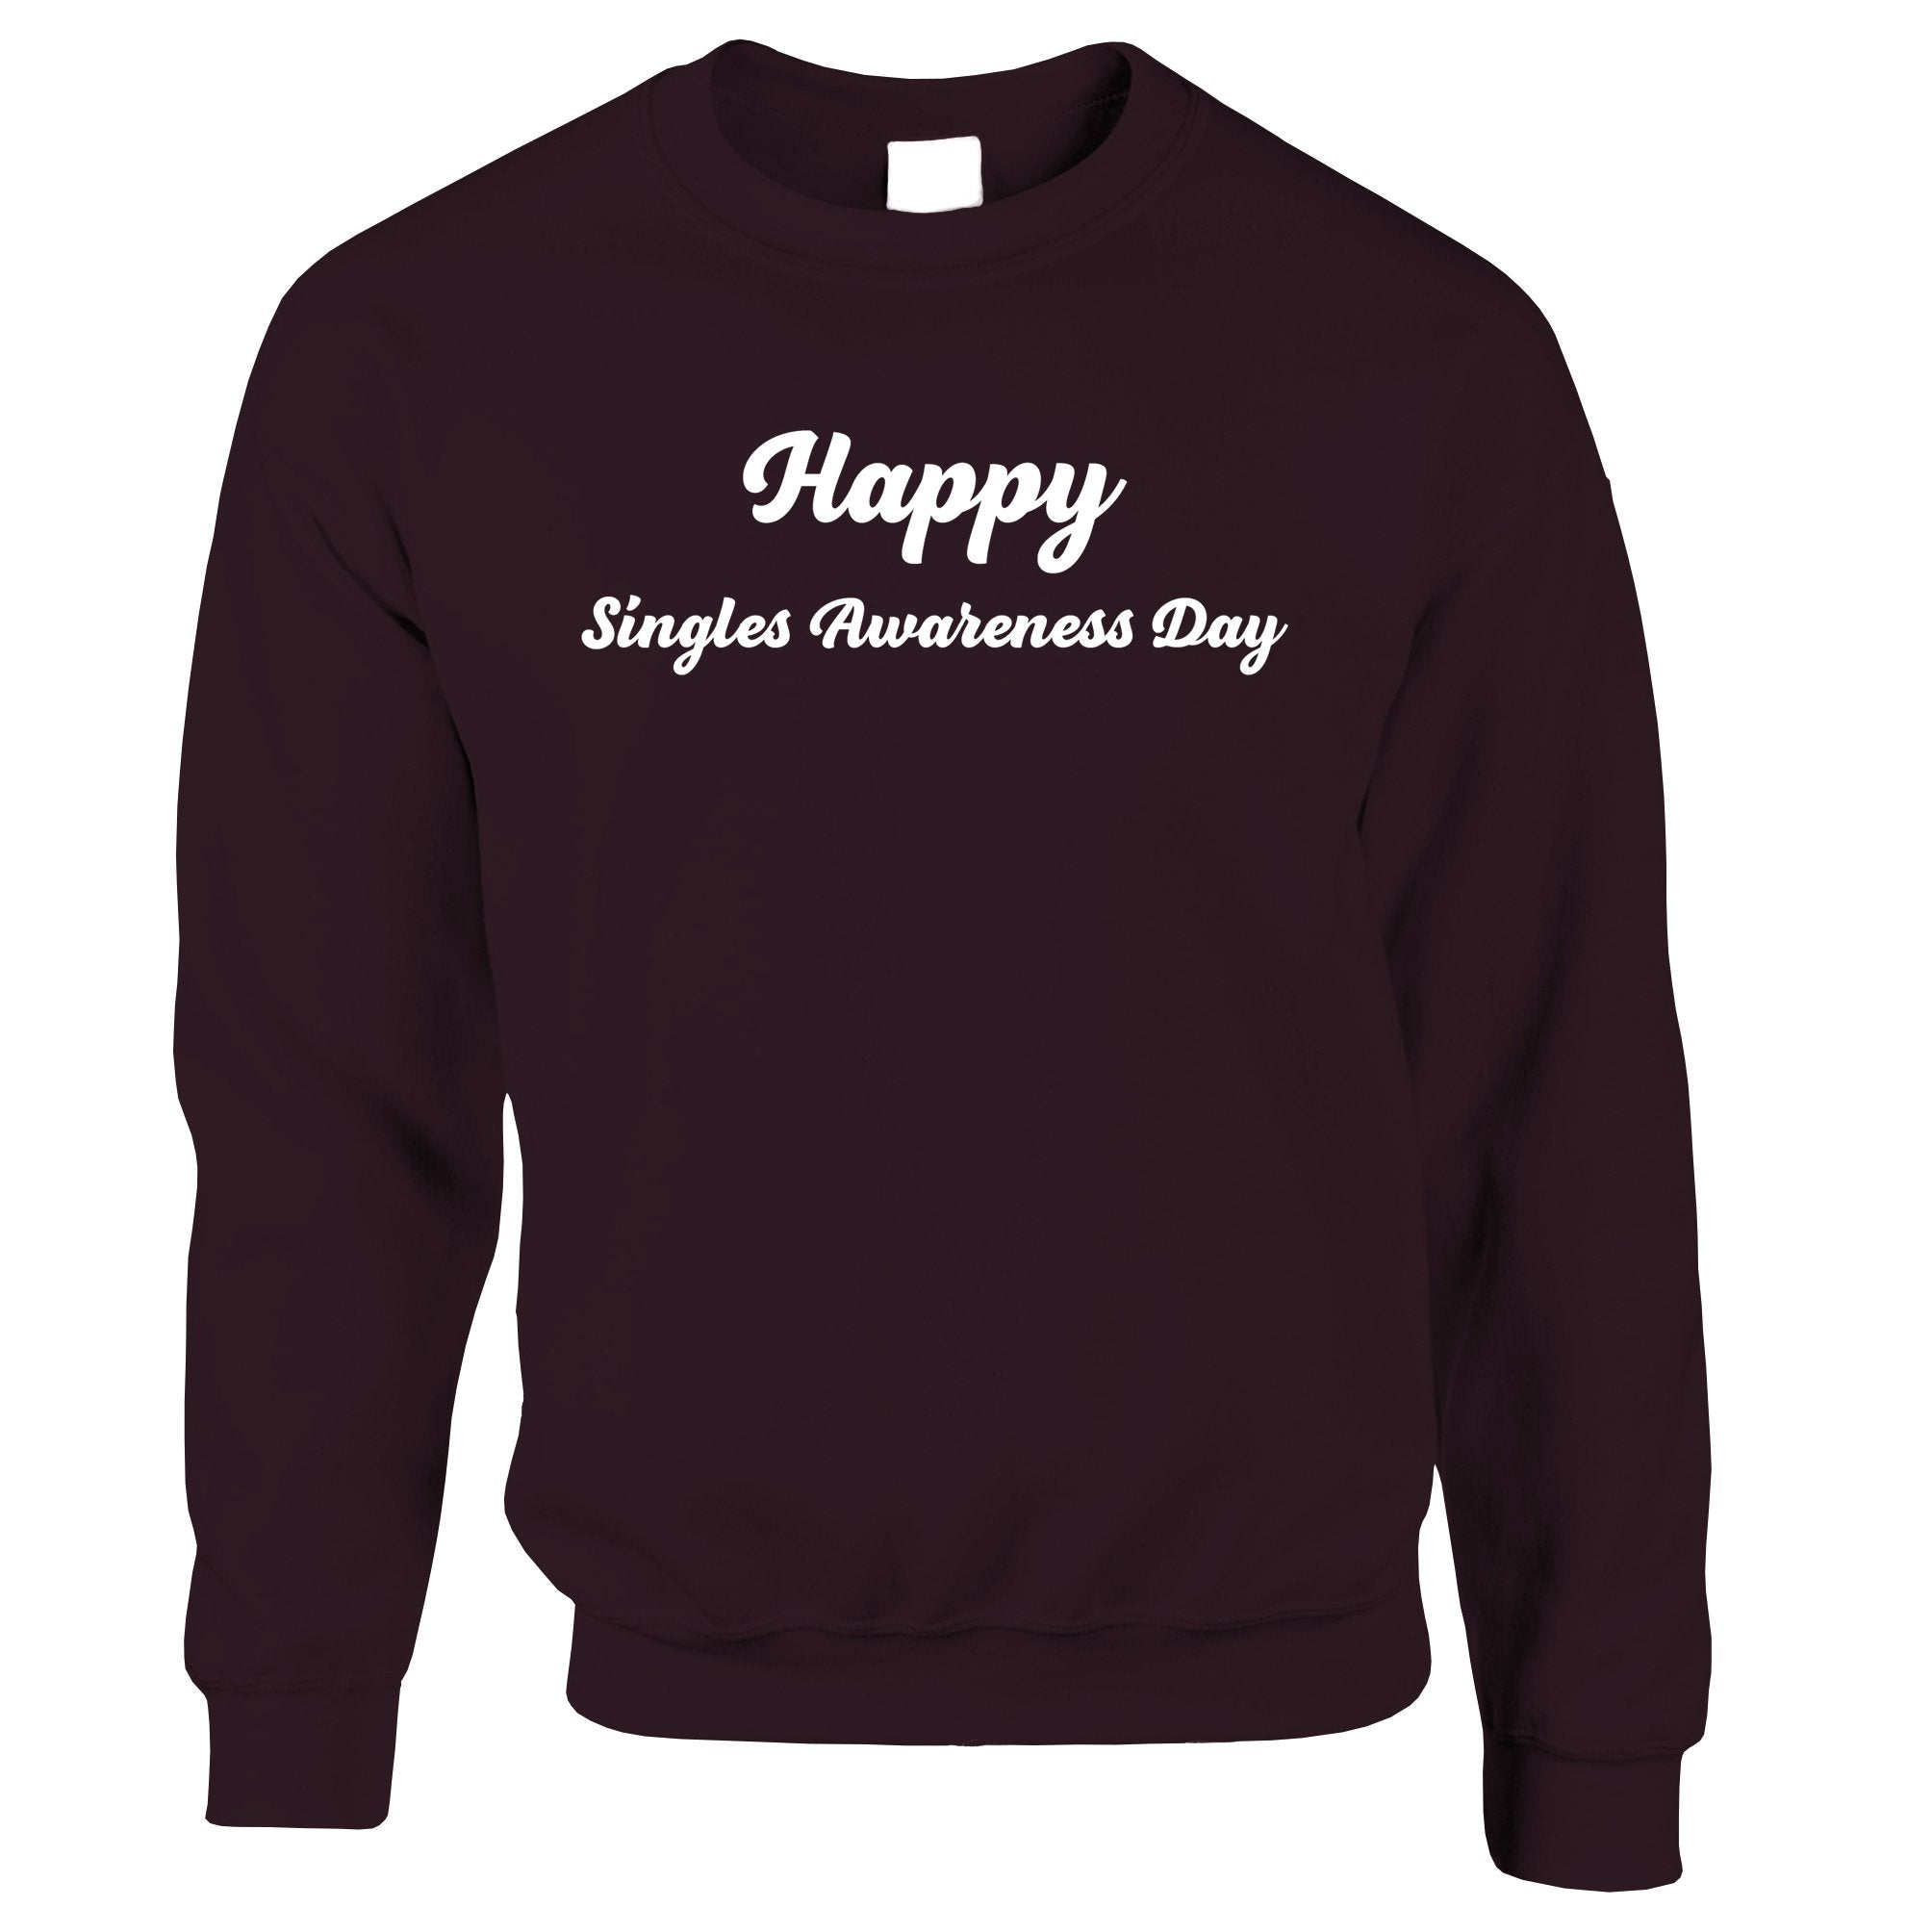 Joke Valentine's Day Jumper Singles Awareness Day Sweatshirt Sweater